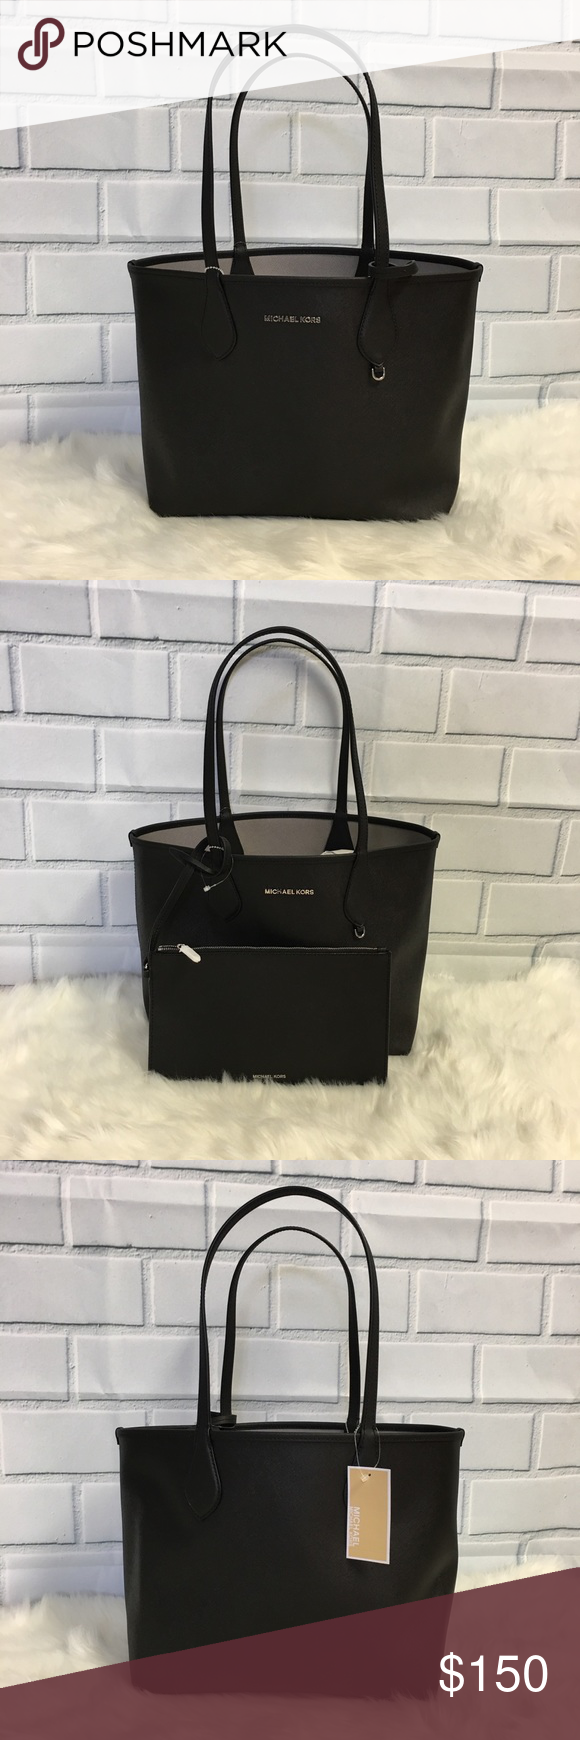 844ce97c3d9dac NWT MICHAEL KORS SAIGE BLACK GREY REVERSIBLE TOTE Brand new with tags  Authentic Safiano Leather Open